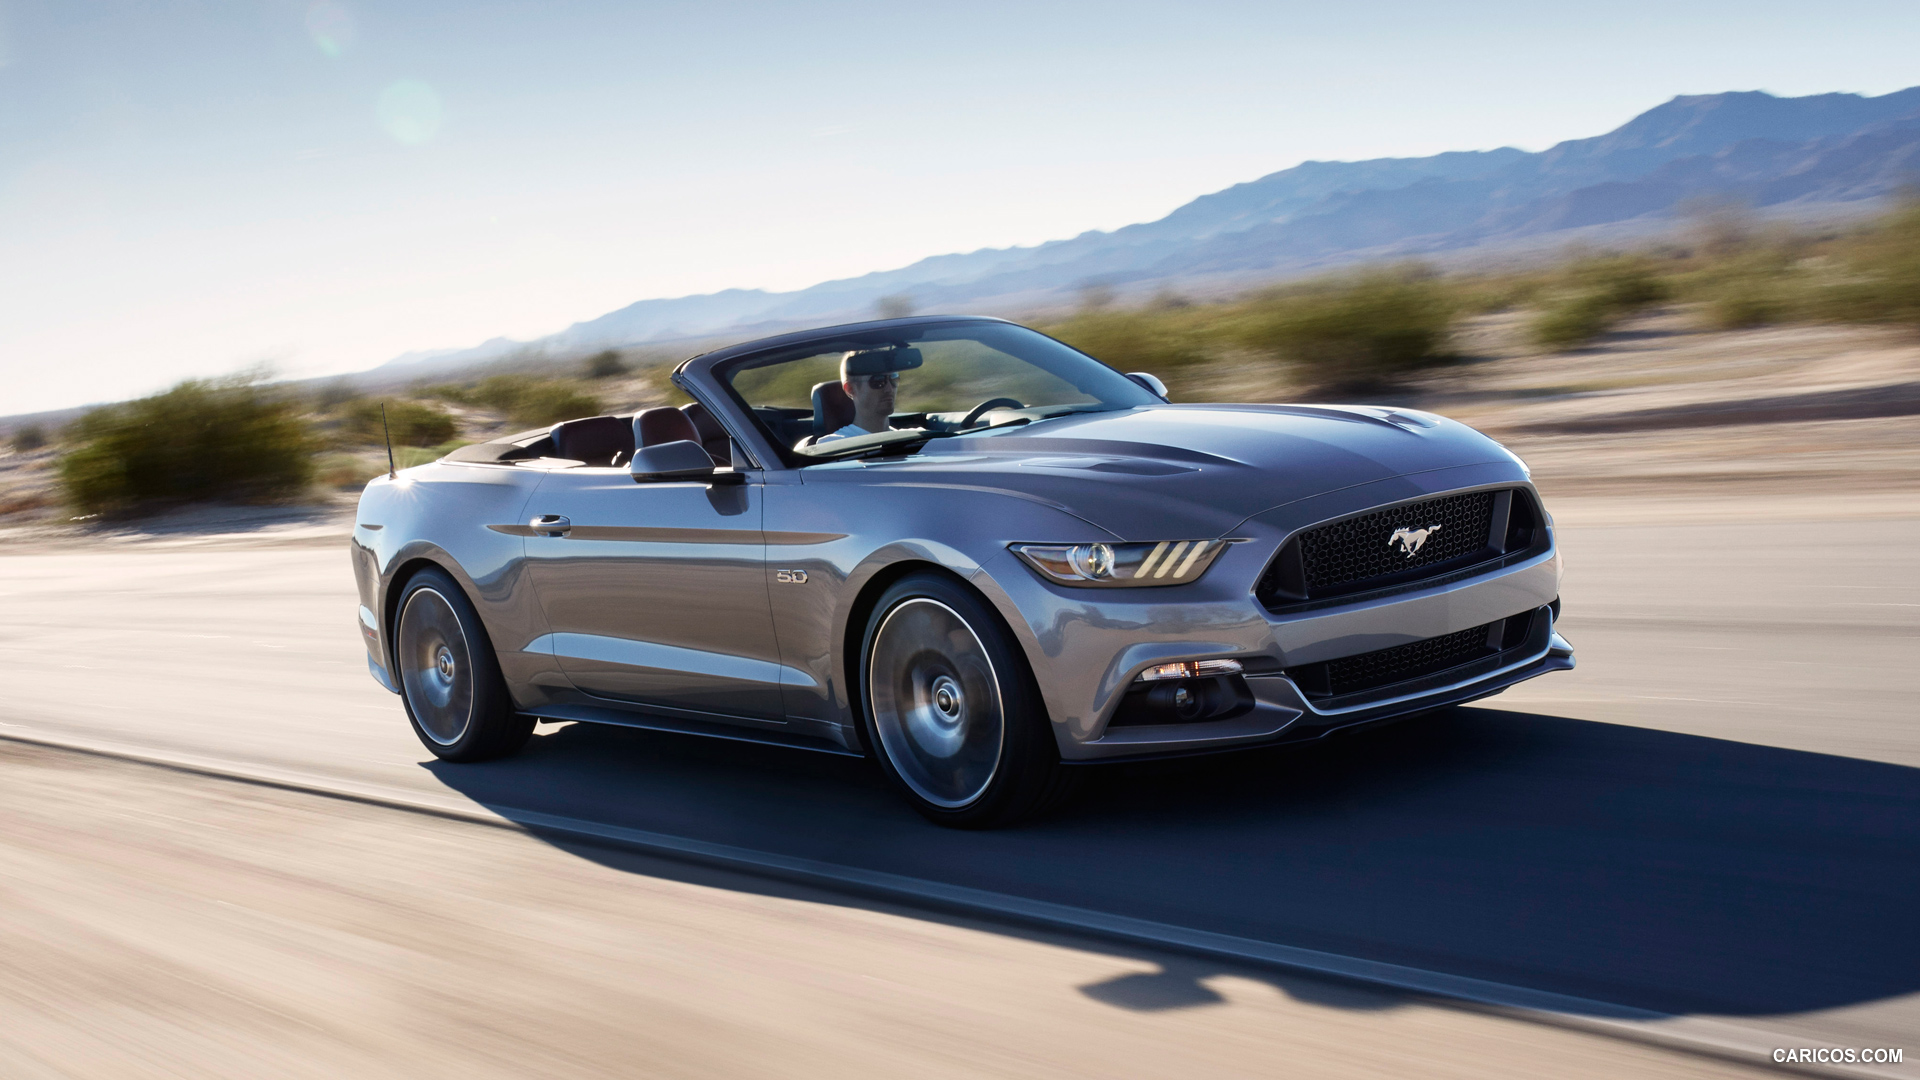 1920x1080 - Ford Convertible Wallpapers 30